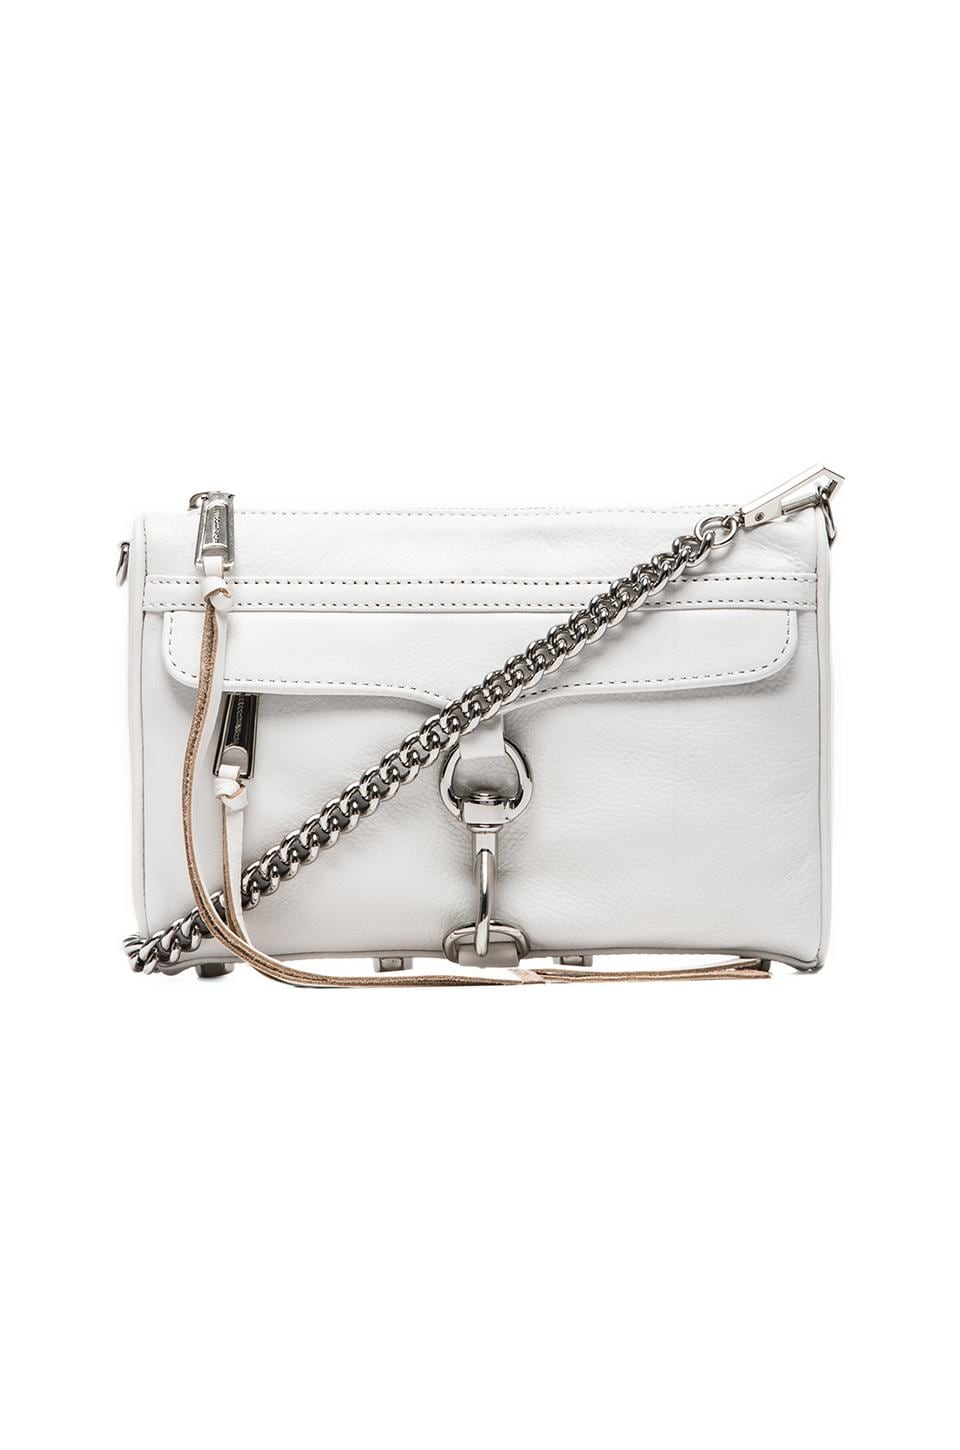 Rebecca Minkoff Mini MAC in White